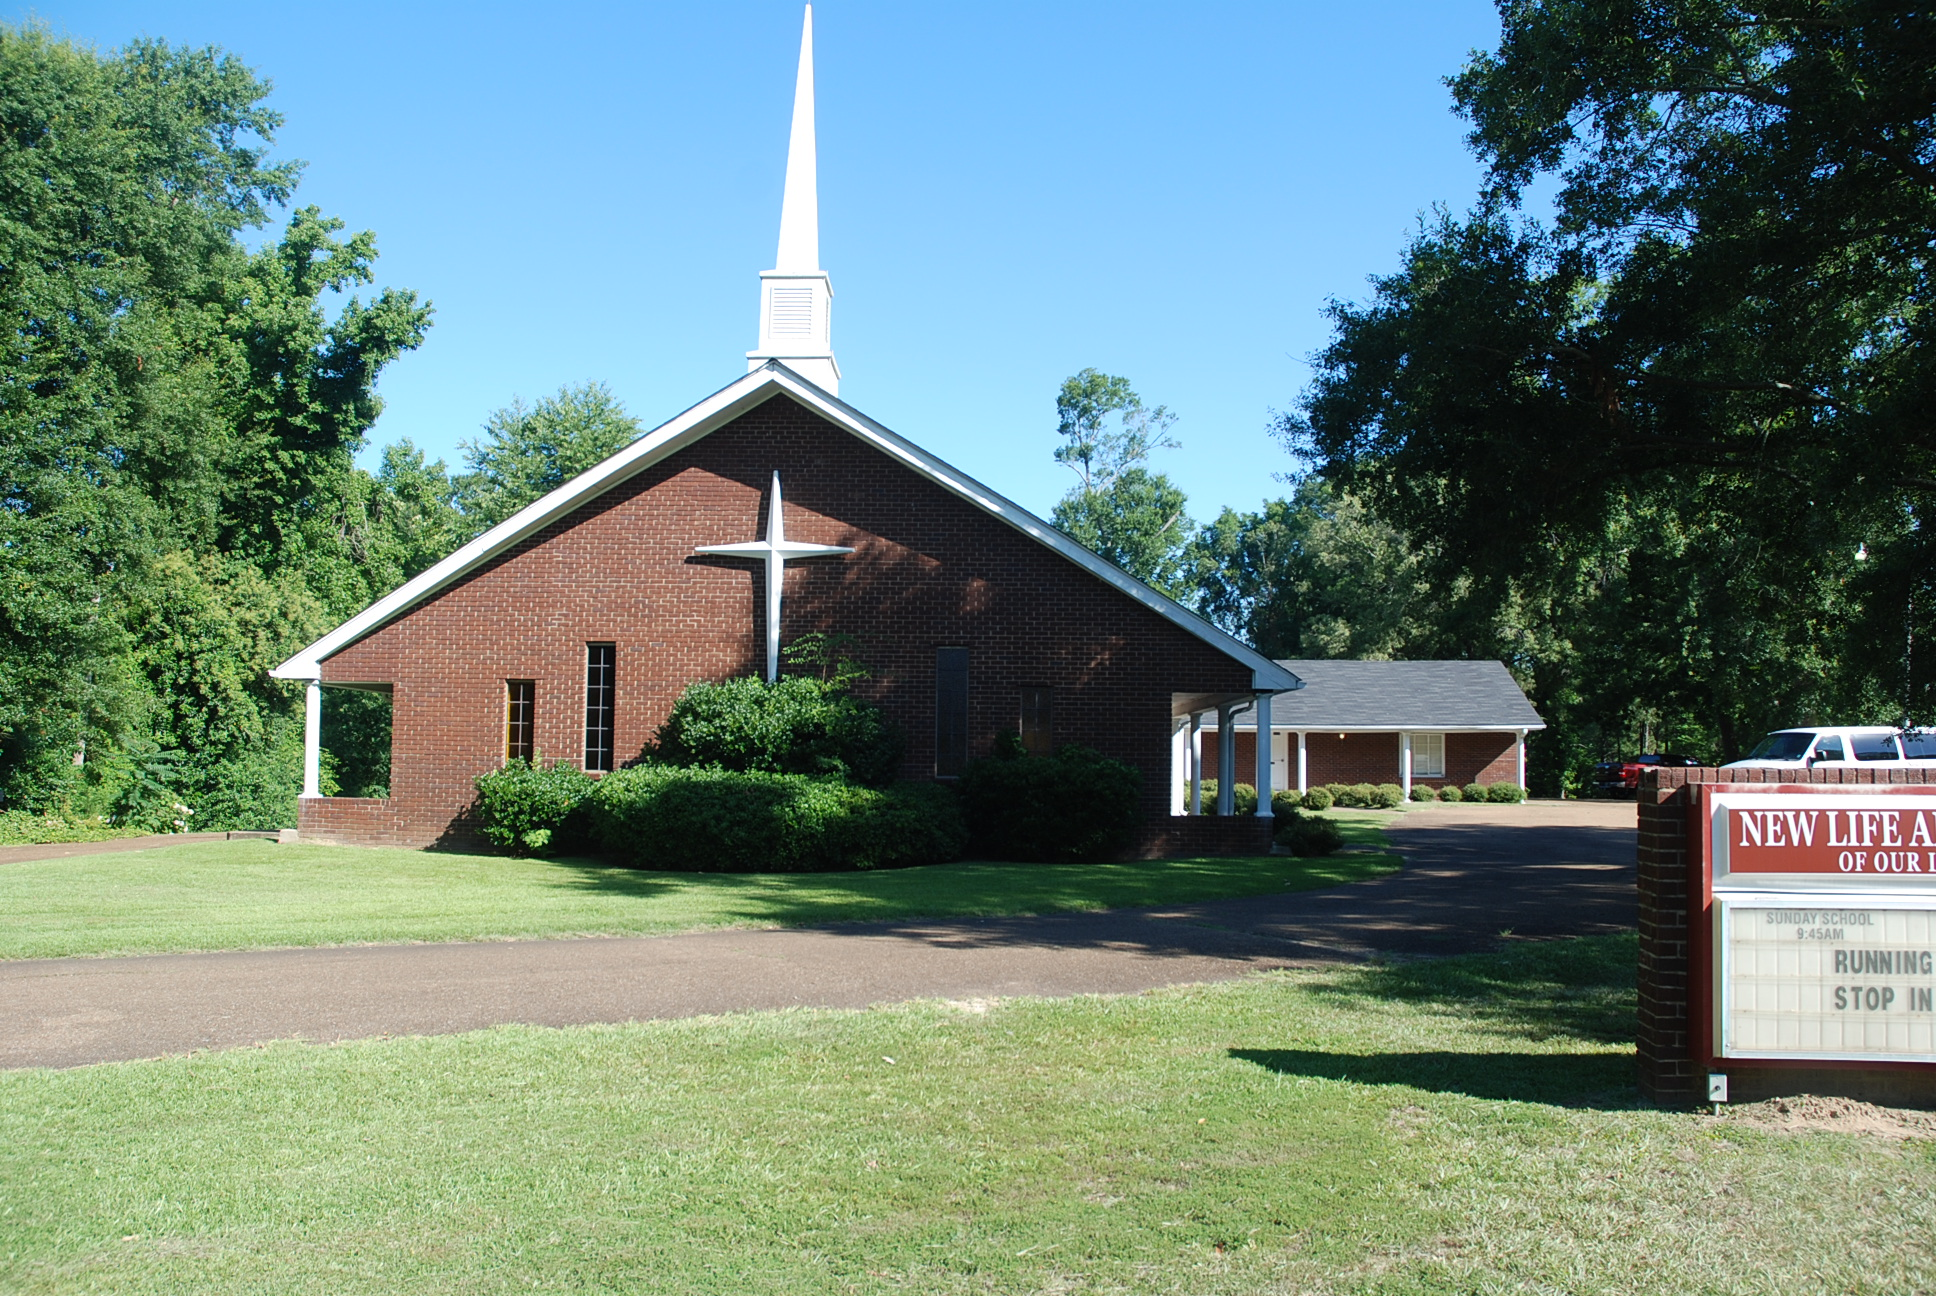 natchezchurch.JPG - 1314035 Bytes